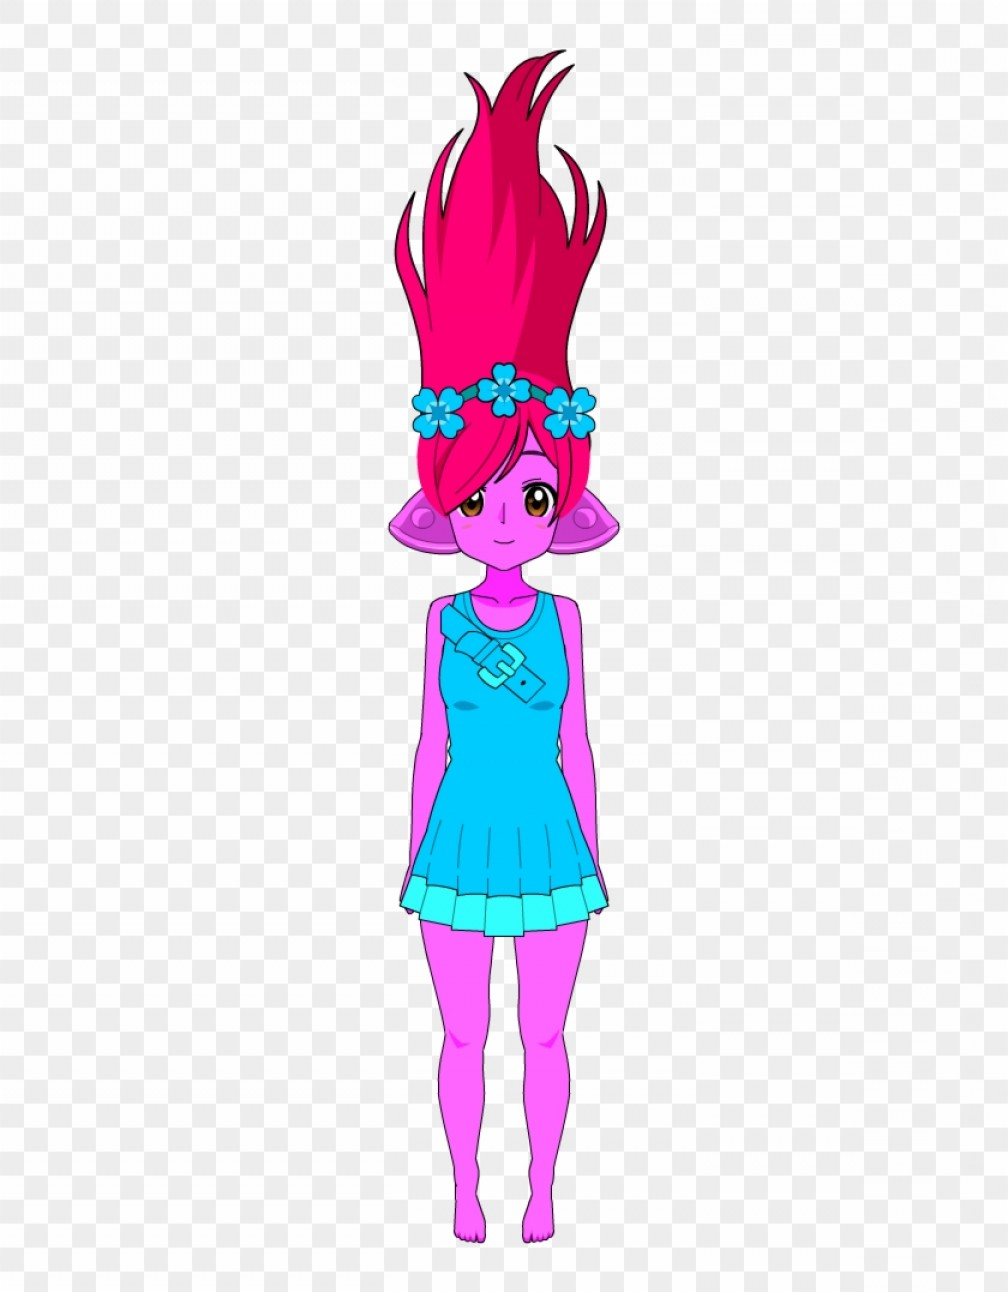 Trolls Poppy And Branch Vector Art: Mimnbhdapoppy In Kisekae Form By Grimkaloonka Cartoon